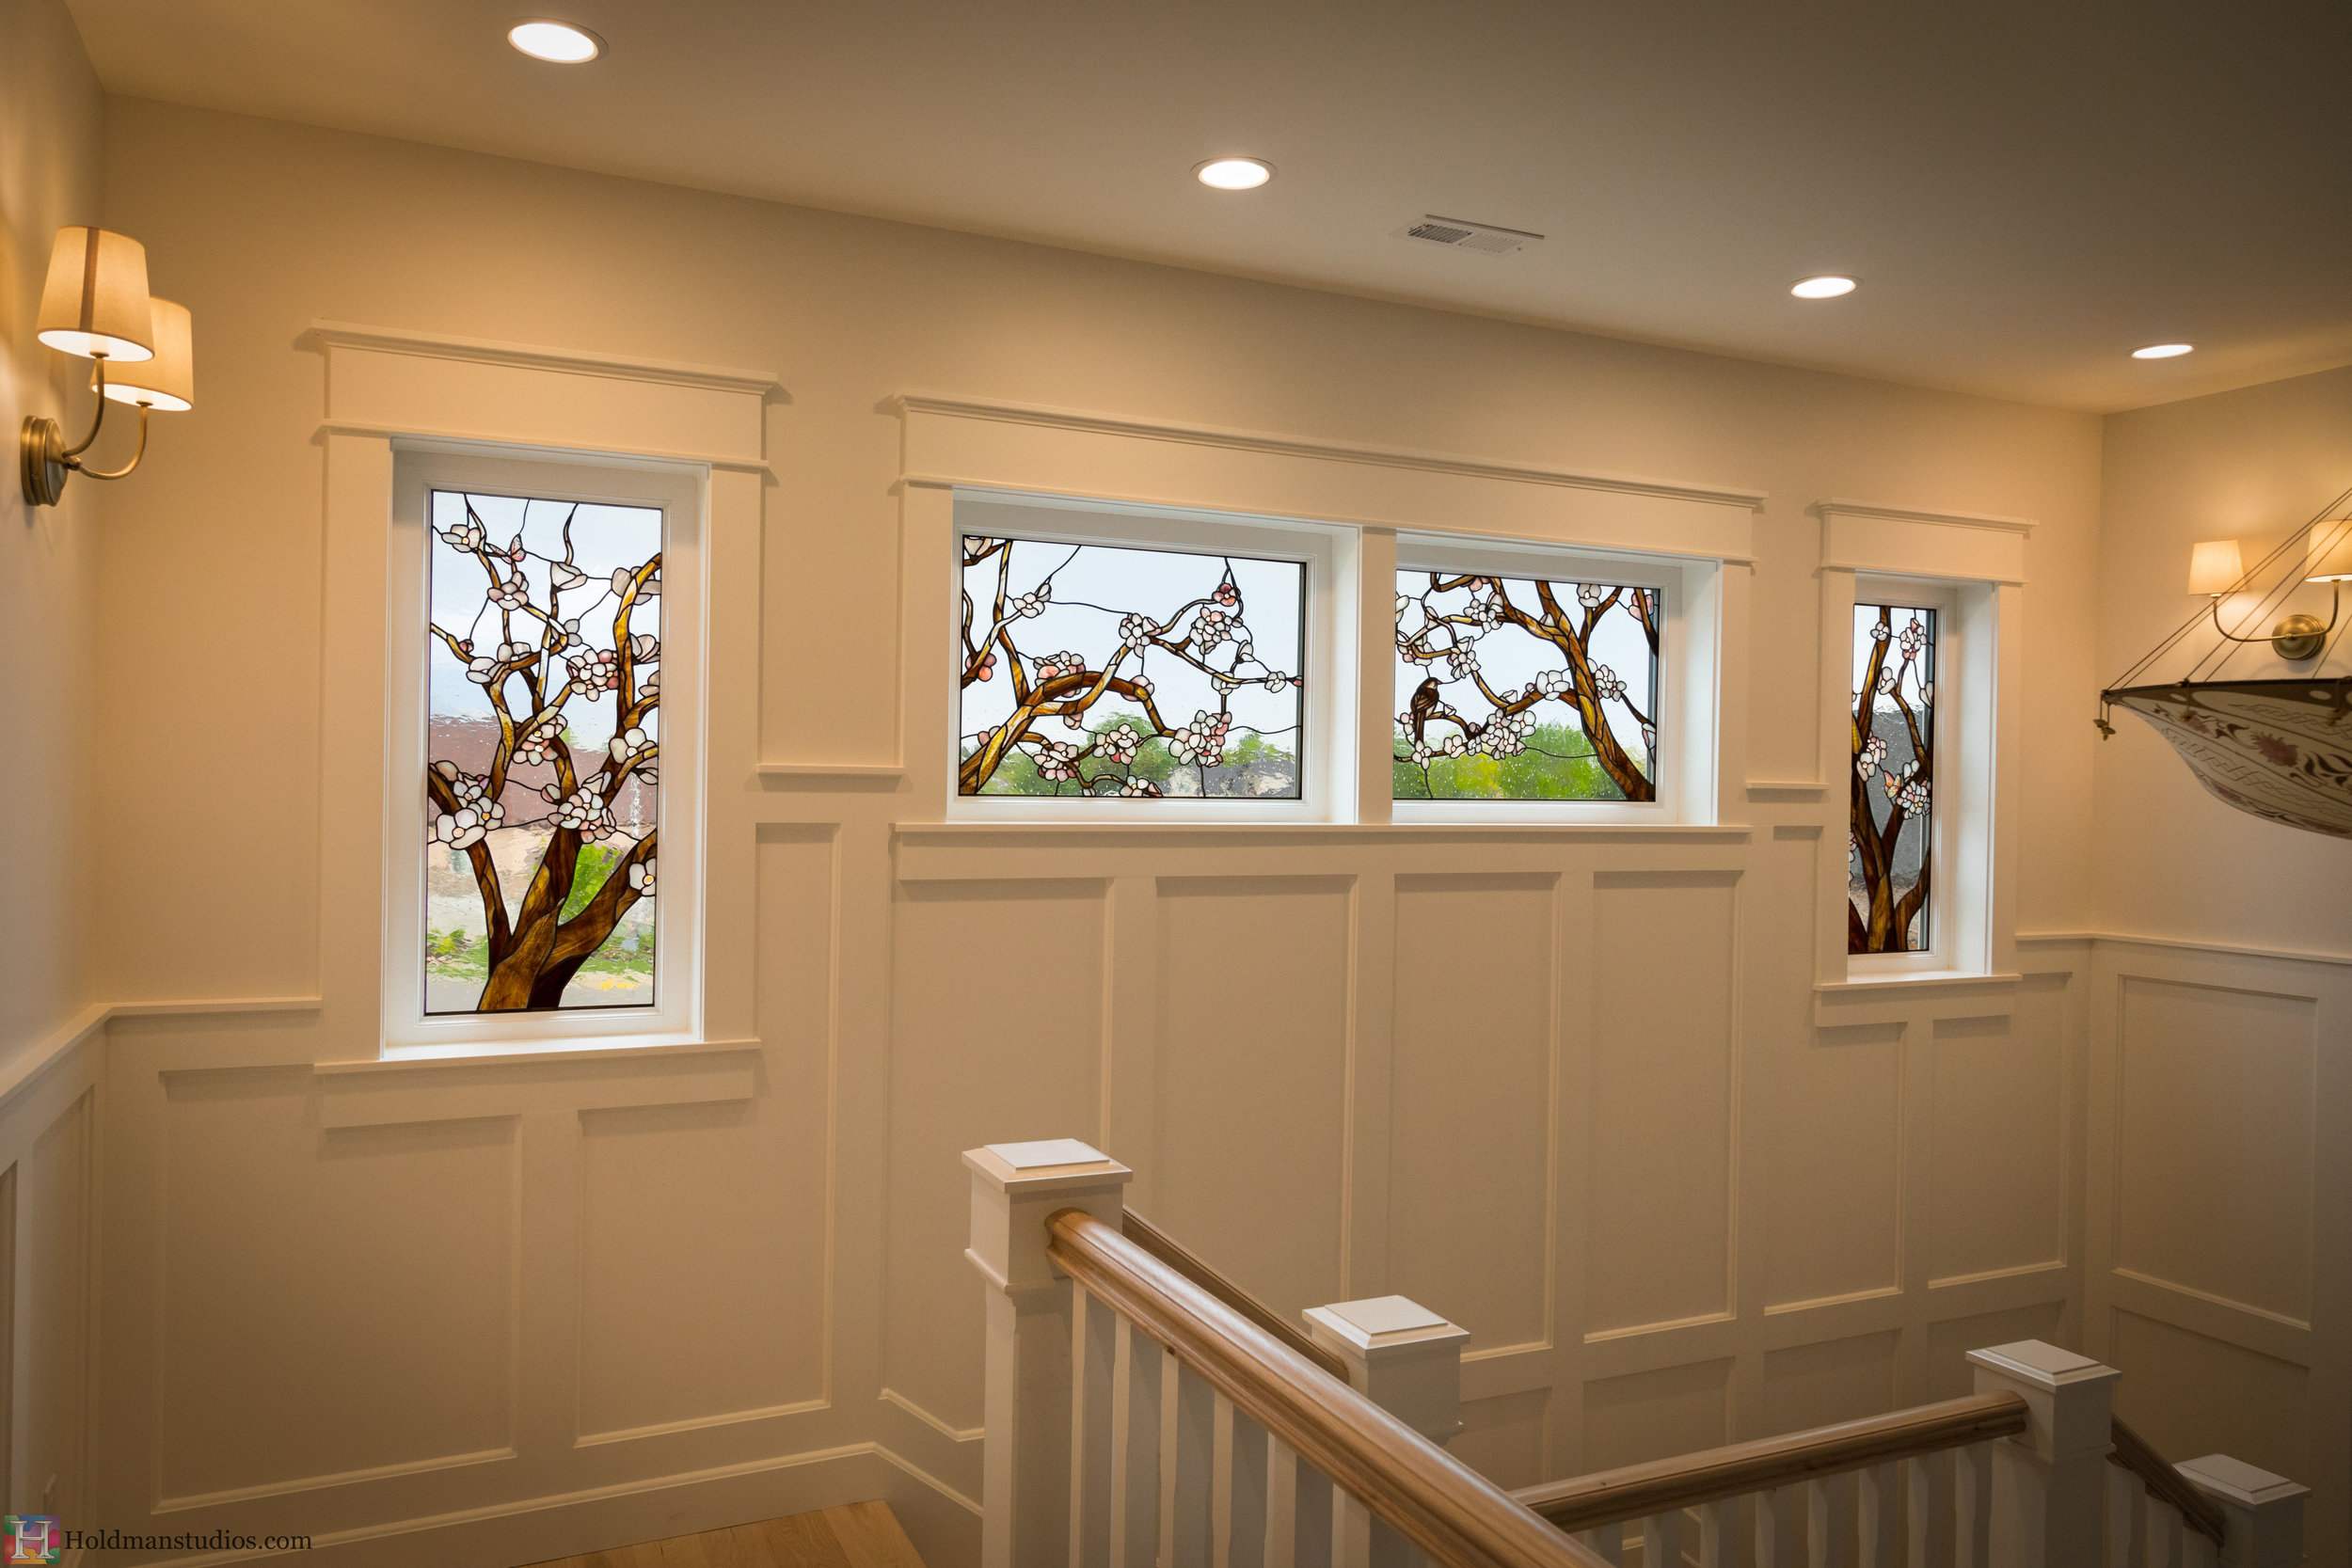 Holdman-Studios-Stained-Glass-Windows-Cherry-Tree-Branches-Blossom-Flowers-Butterfly-Brown-Bird-Sparrow.jpg